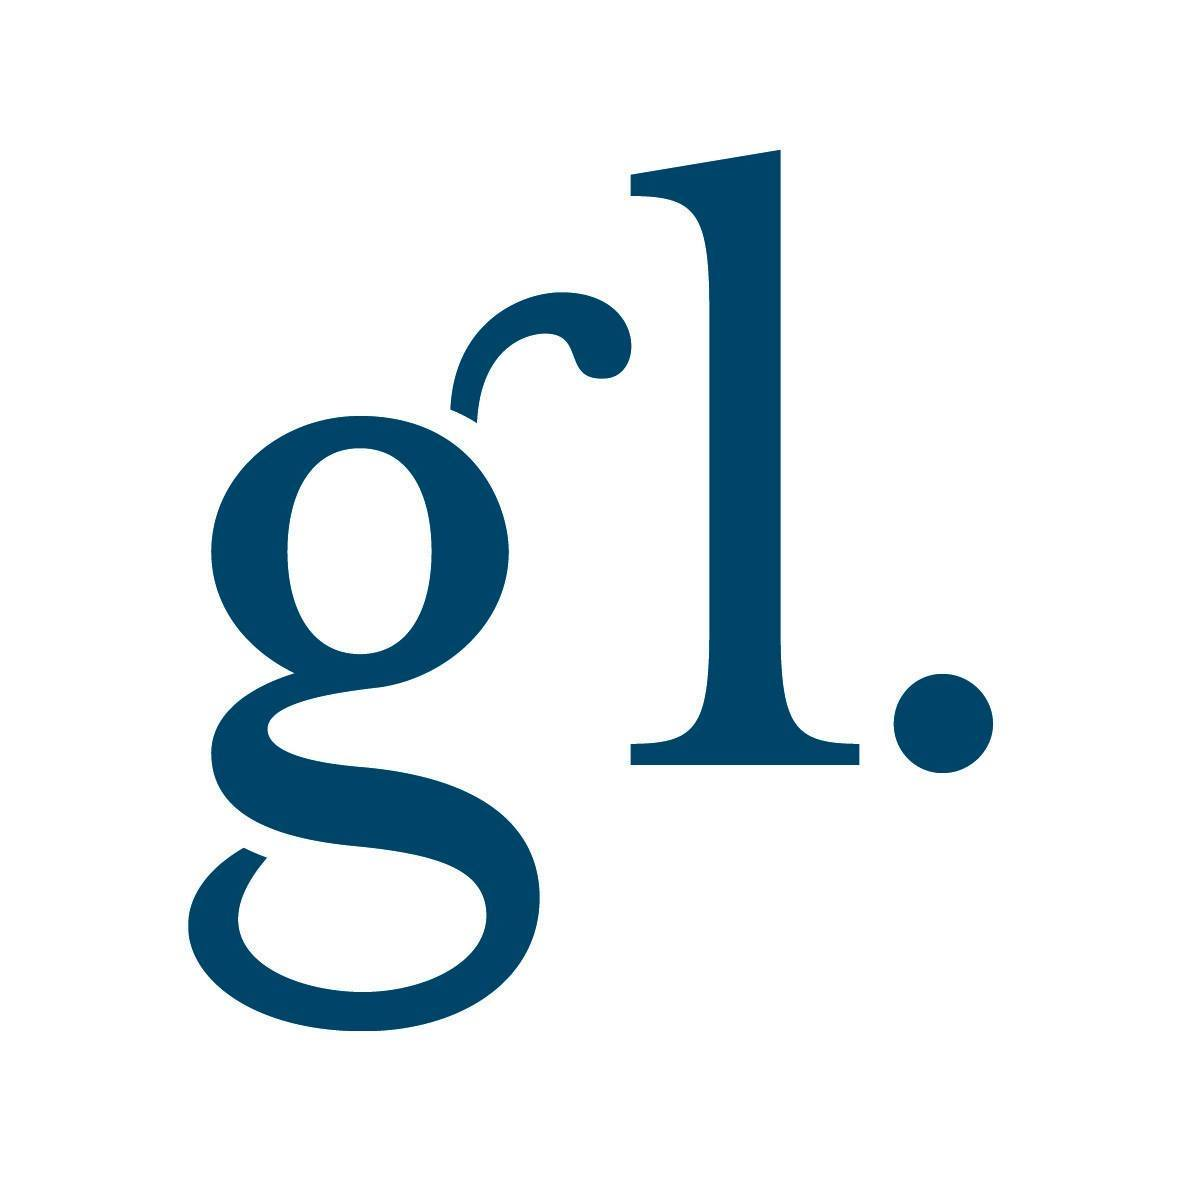 Company logo of Griffin Legal